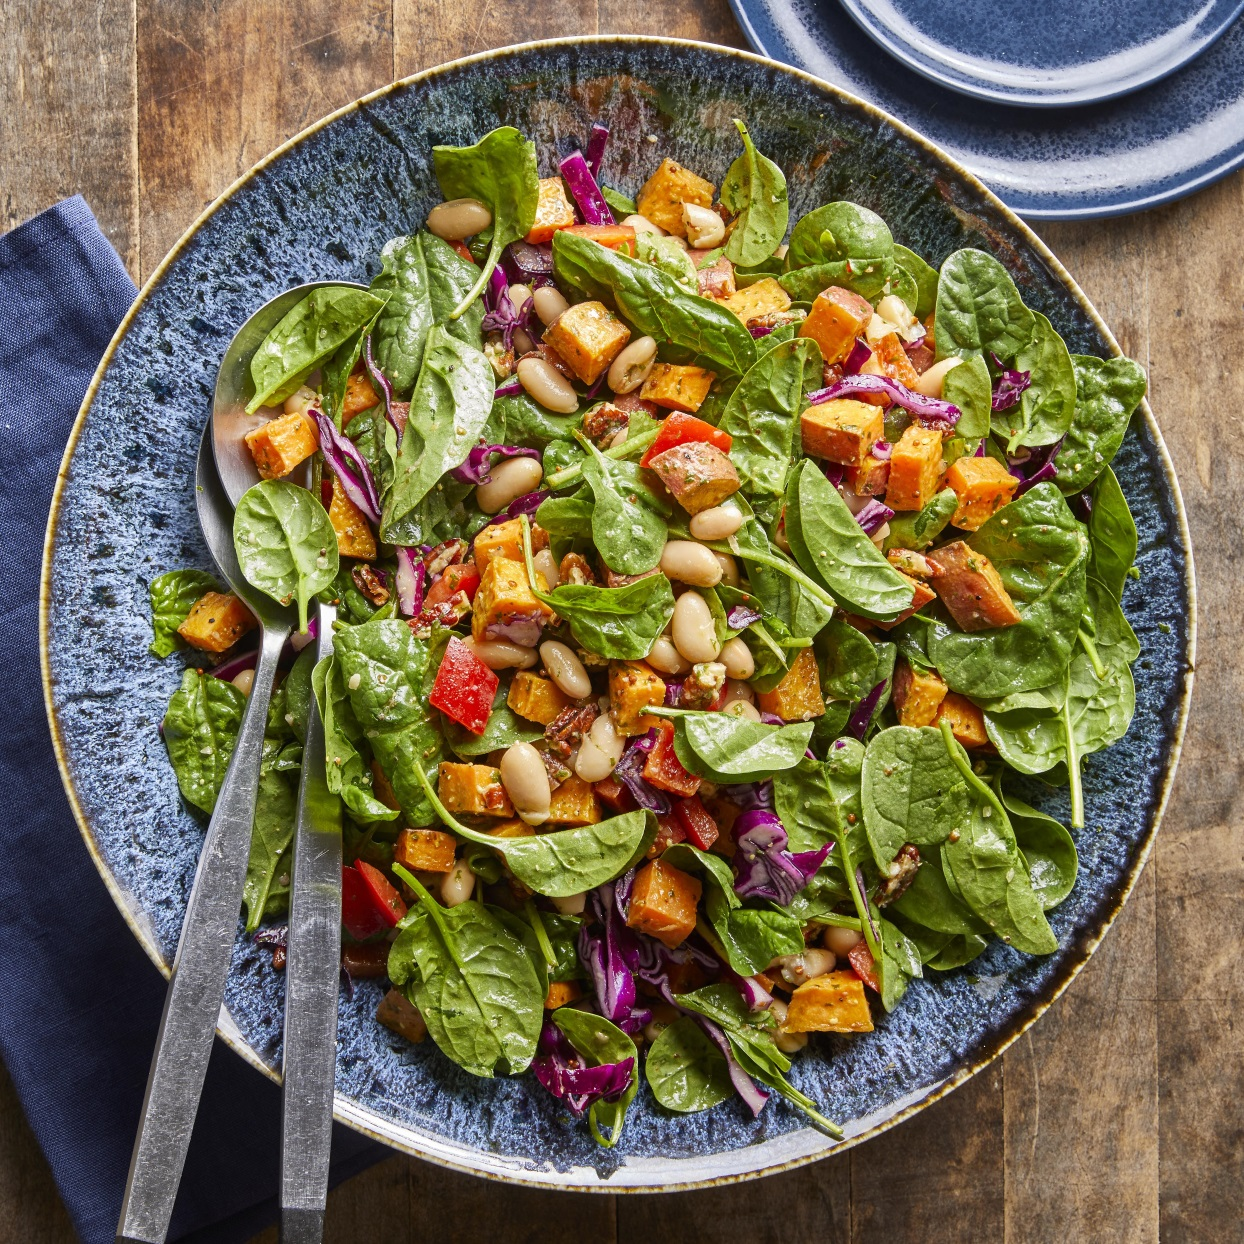 Spinach Salad with Roasted Sweet Potatoes, White Beans & Basil Trusted Brands